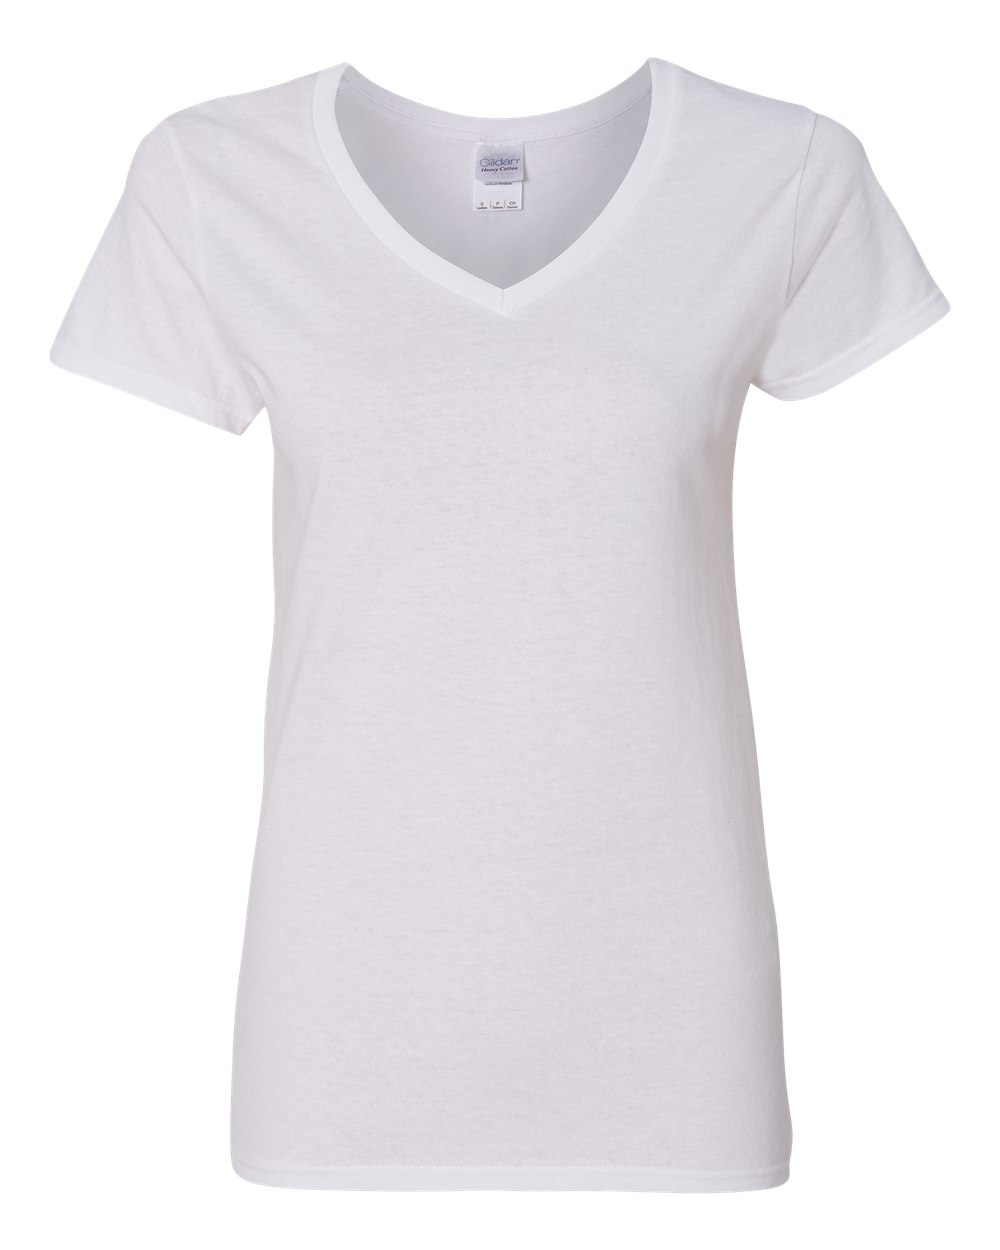 02db9e12667 How Are T Shirts Made With No Seams | Top Mode Depot